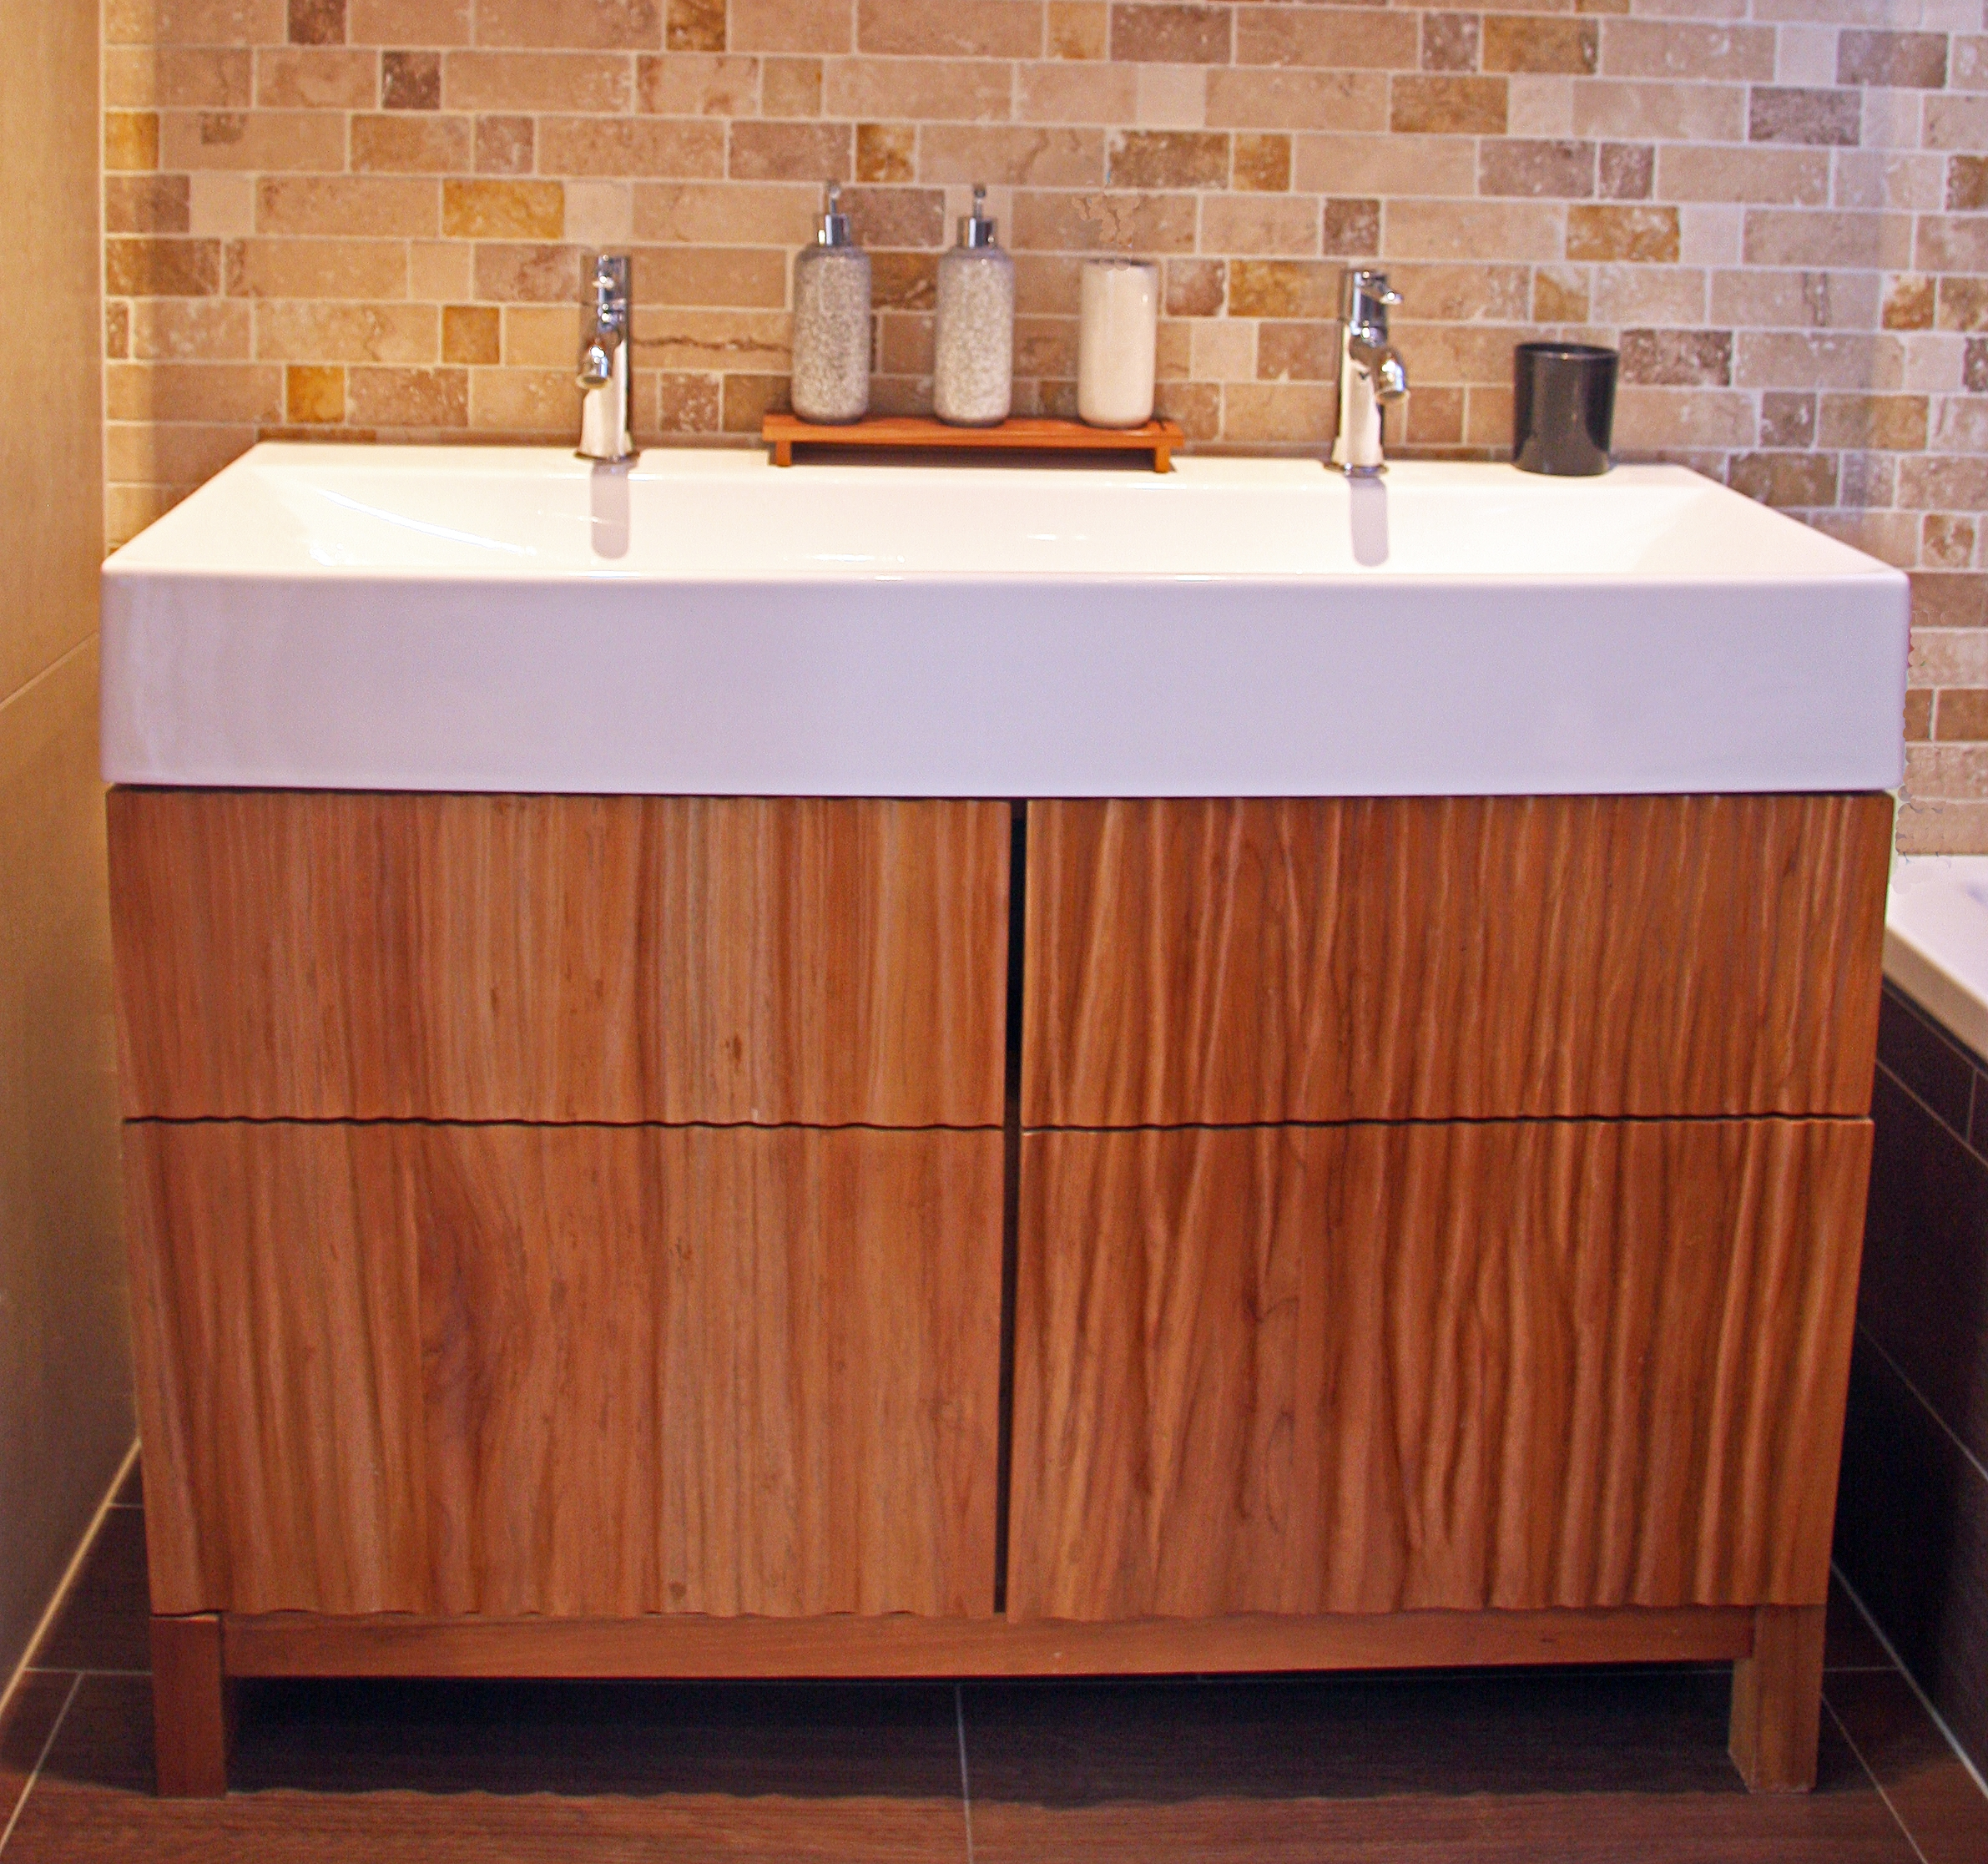 Bathroom furniture teak.jpg